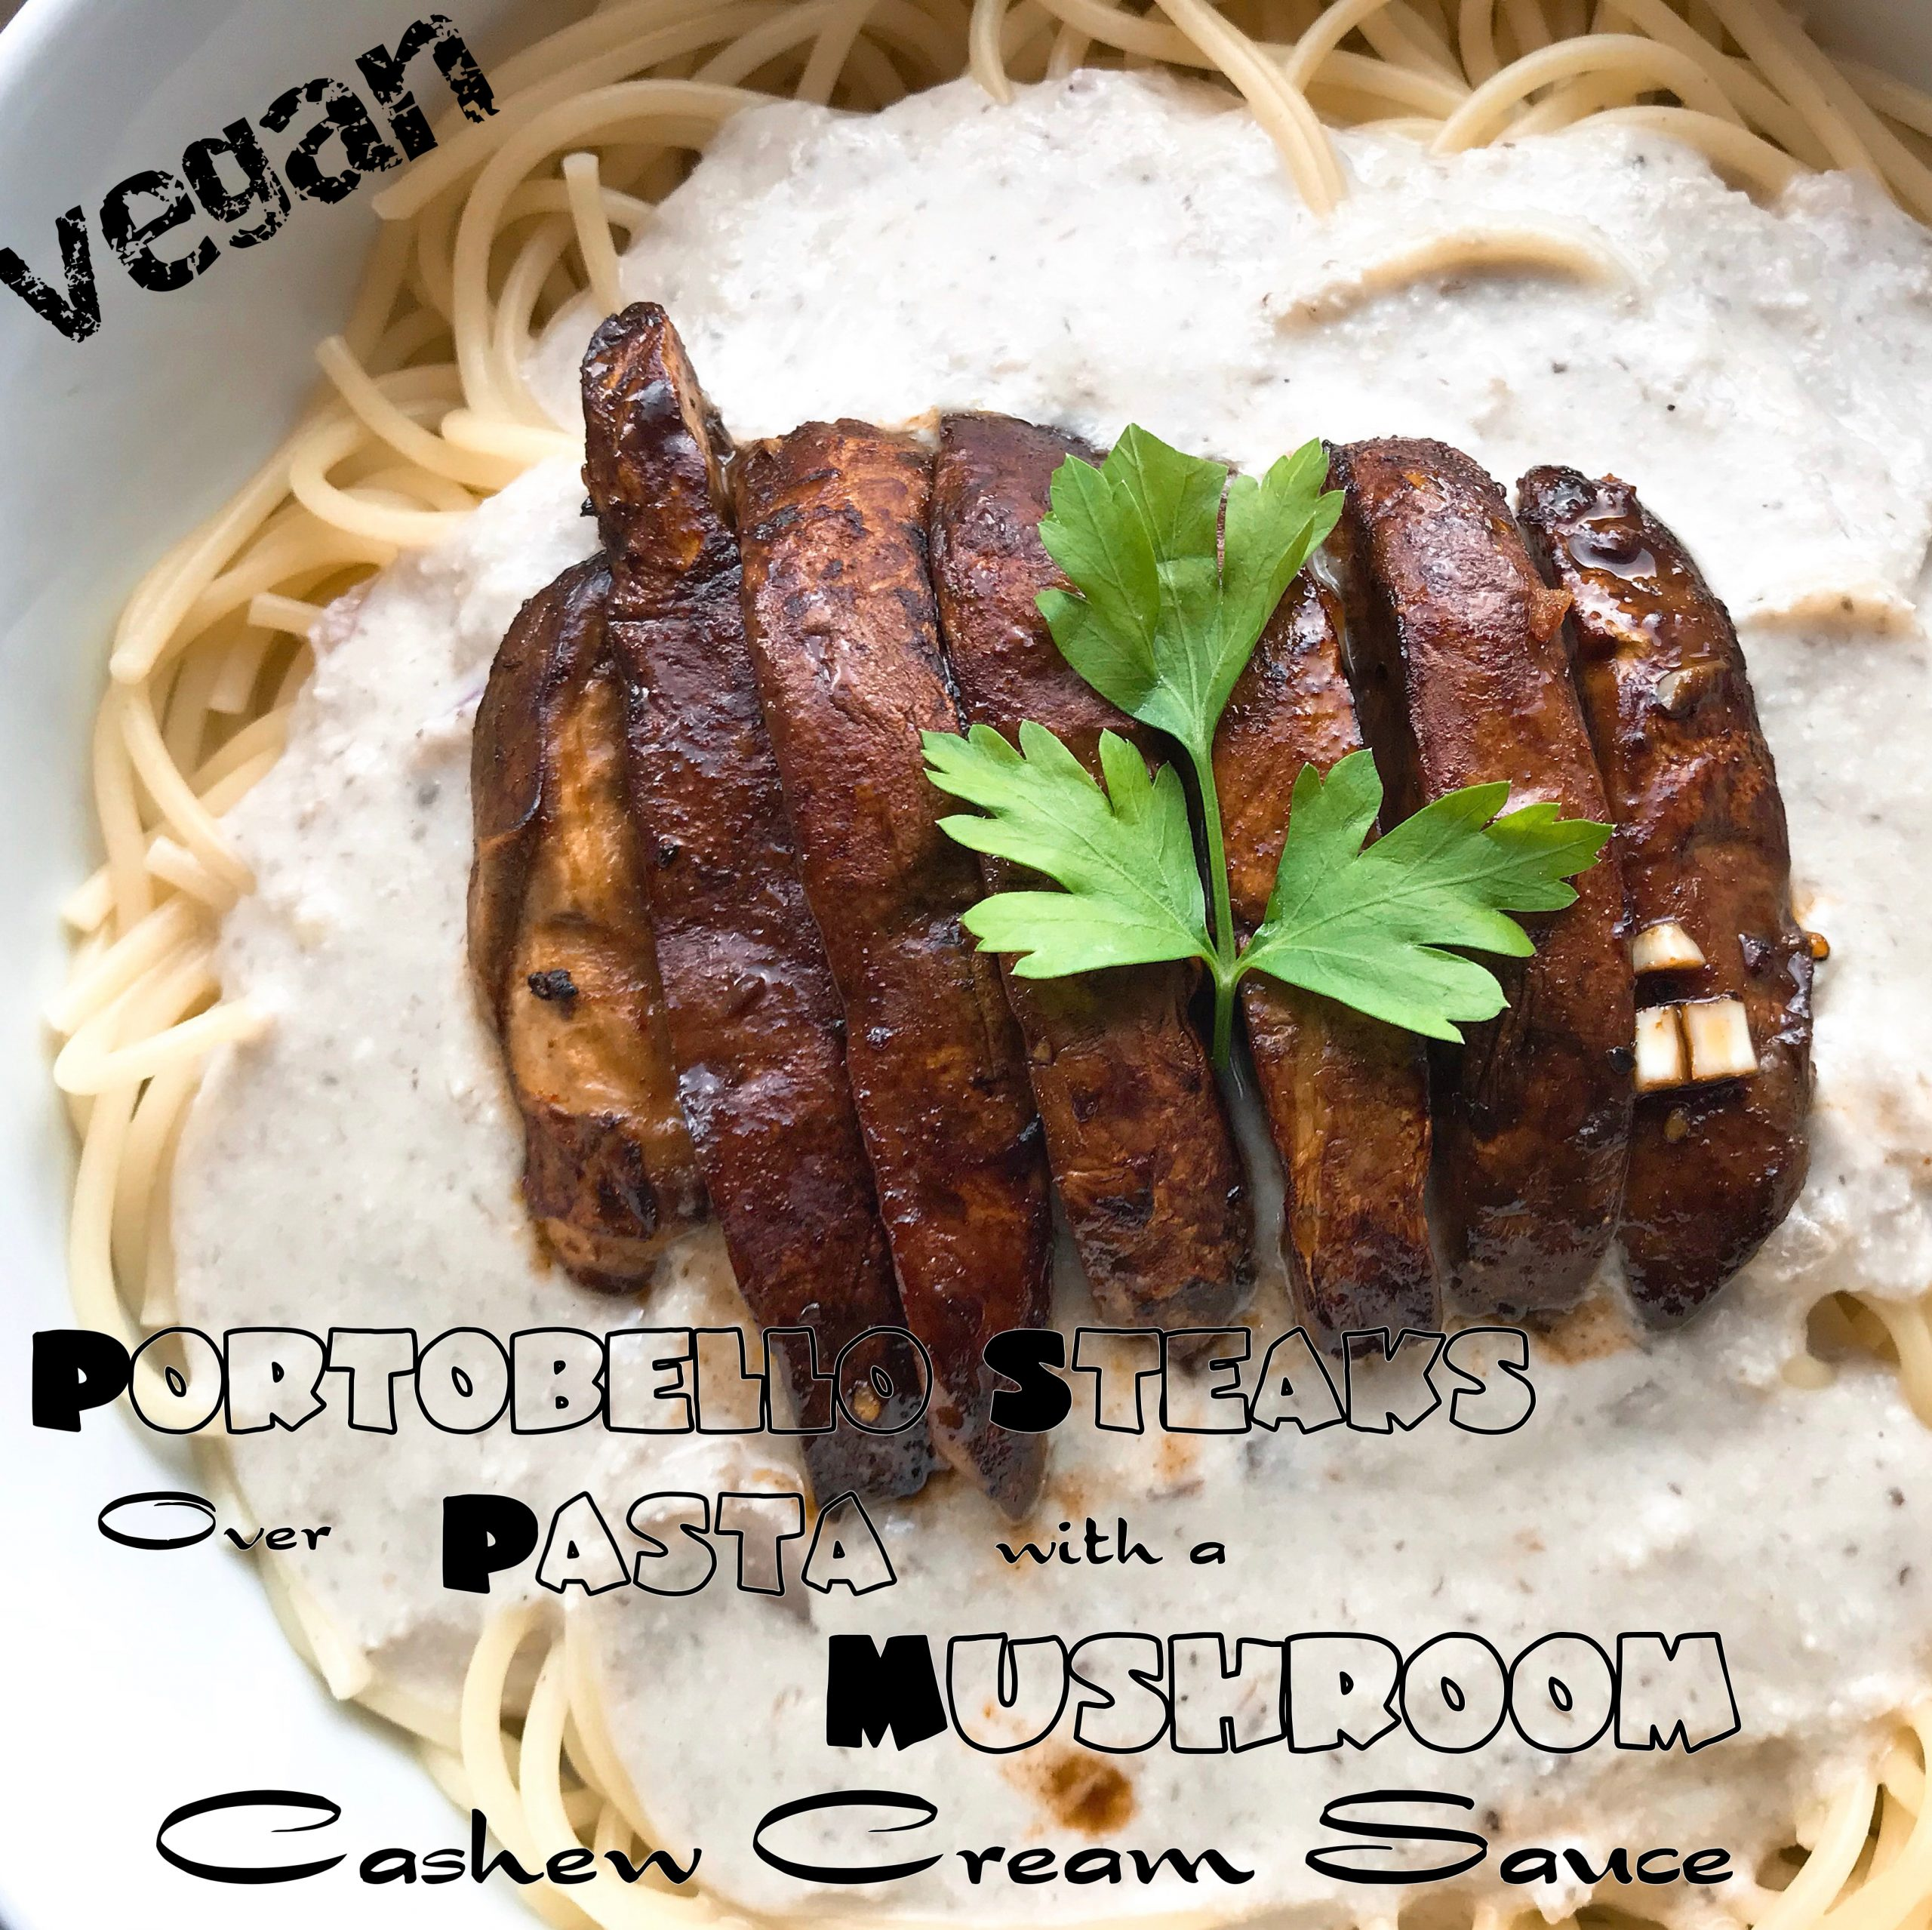 Vegan Portobello Steaks over Pasta with Mushroom Cashew Cream Sauce